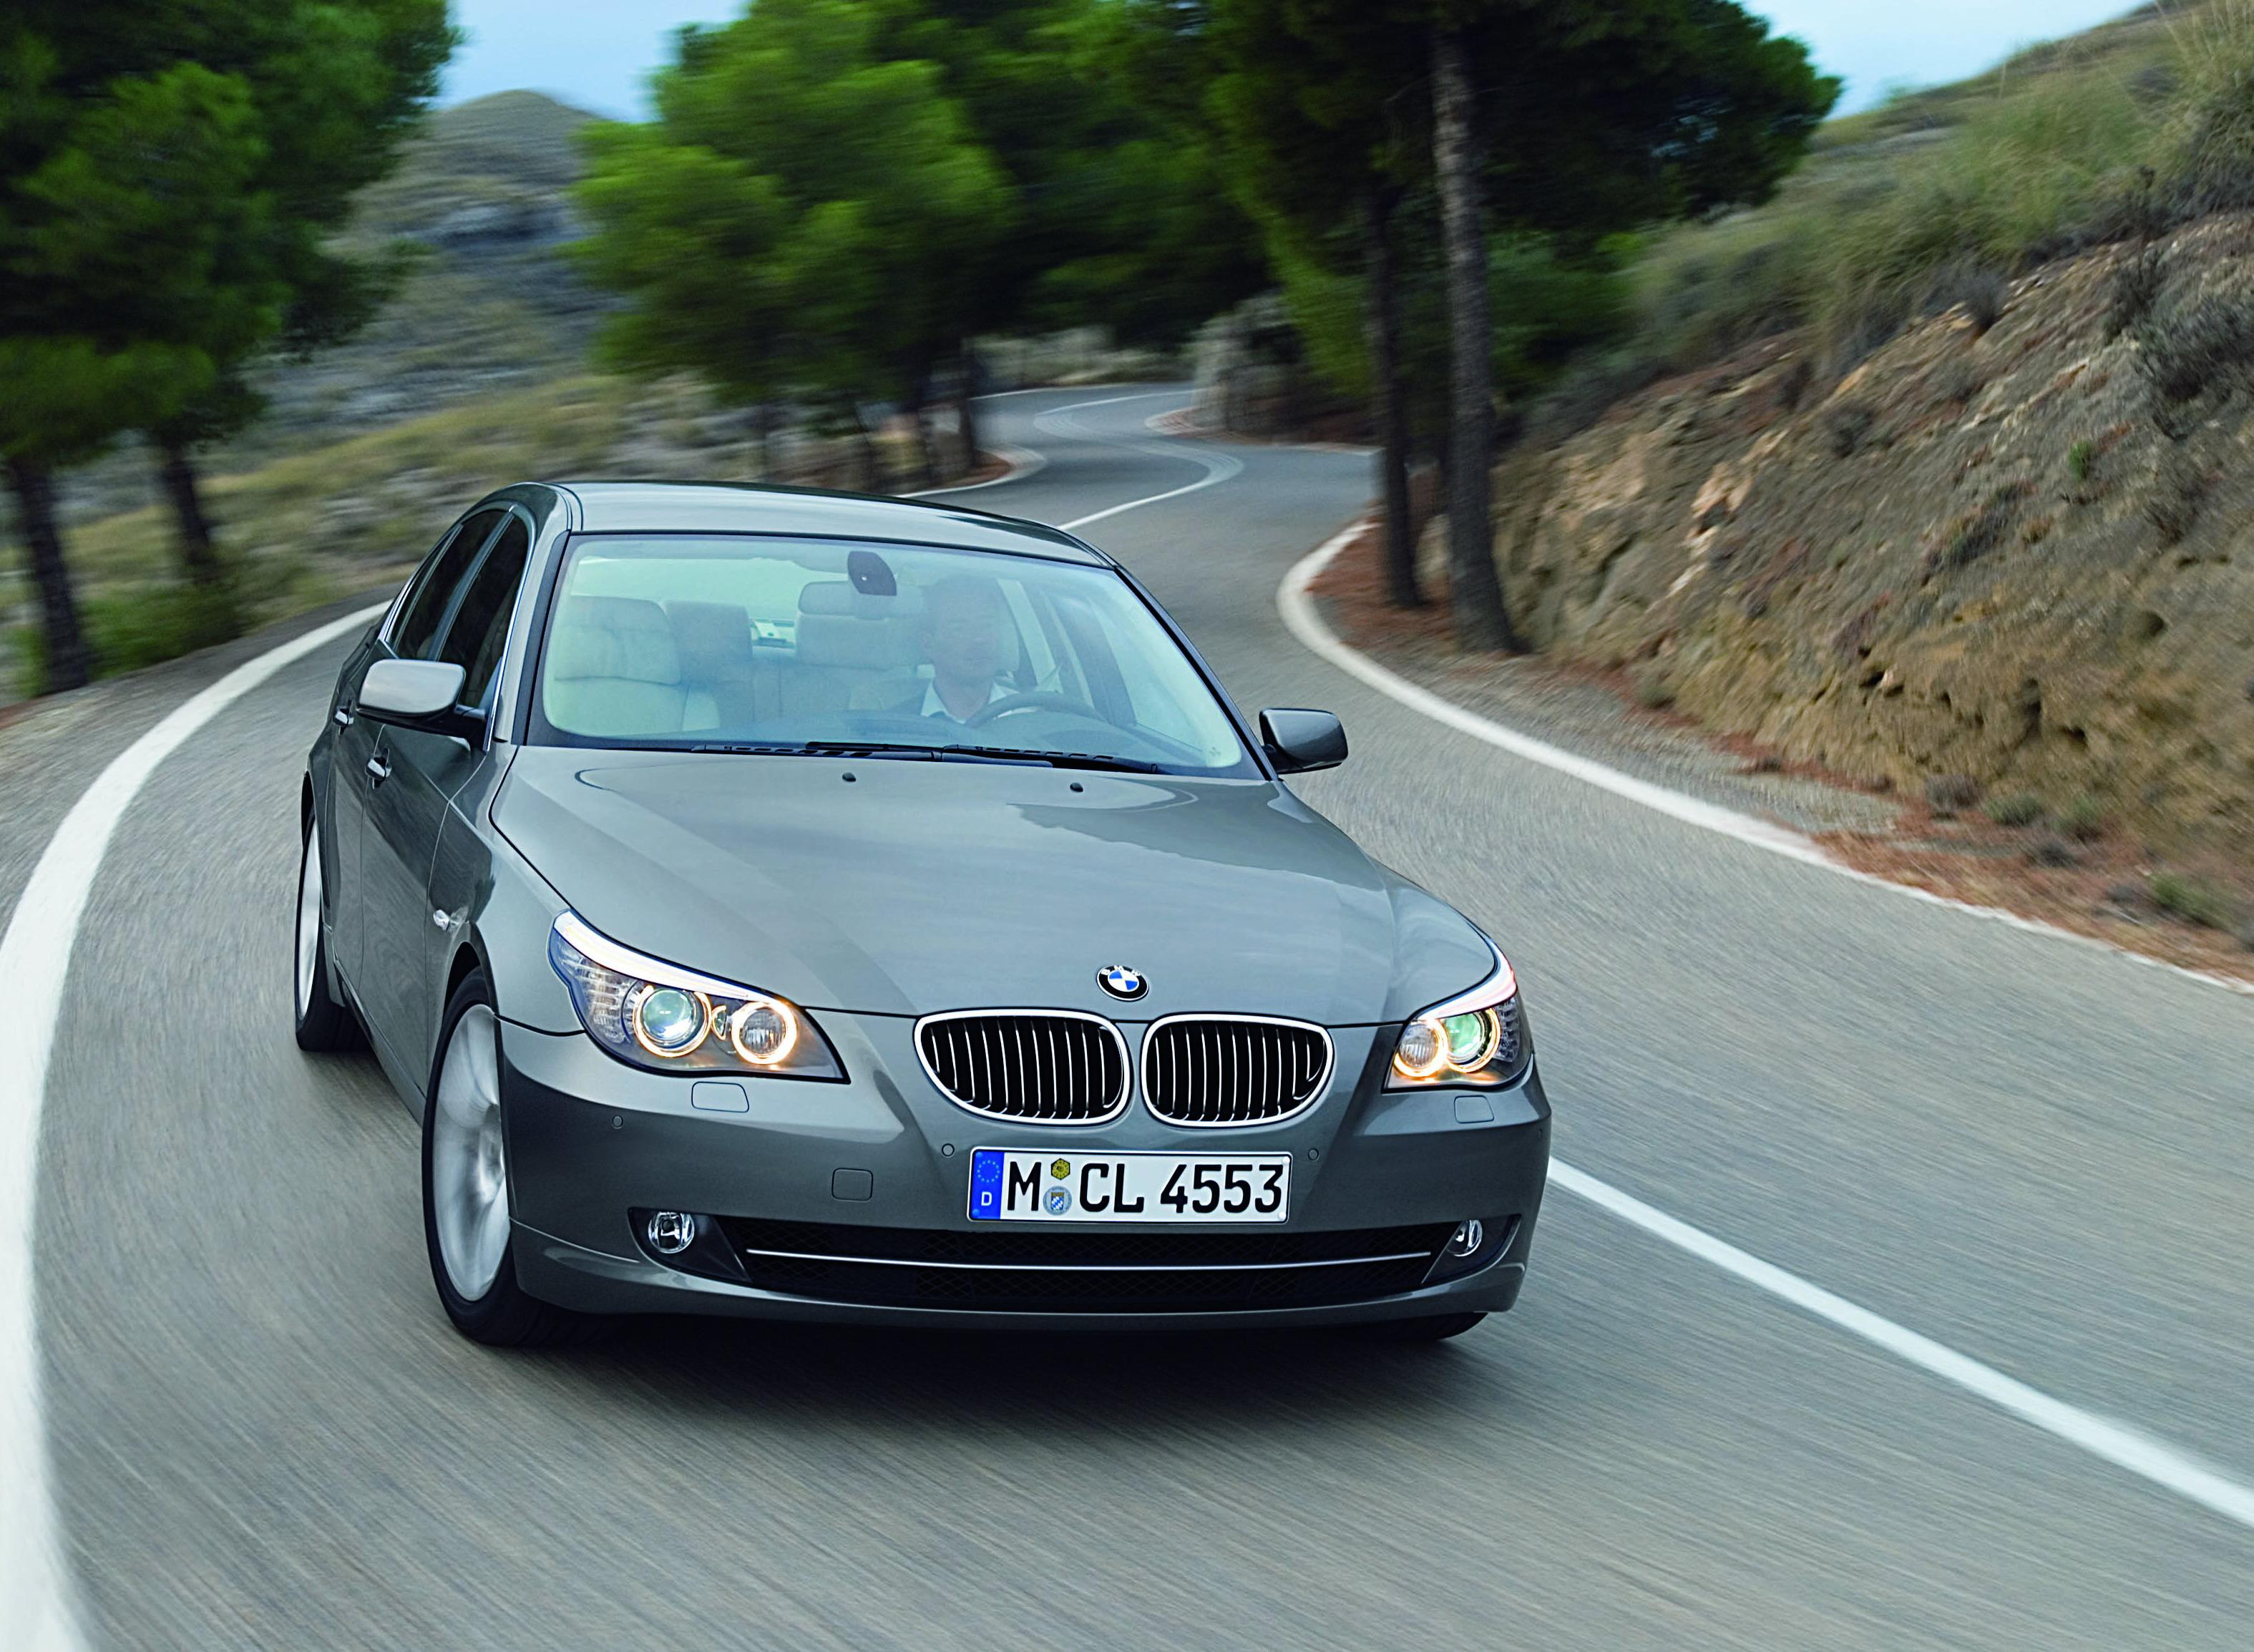 BMW 5 Series: For 520i and 528i: Check oil level